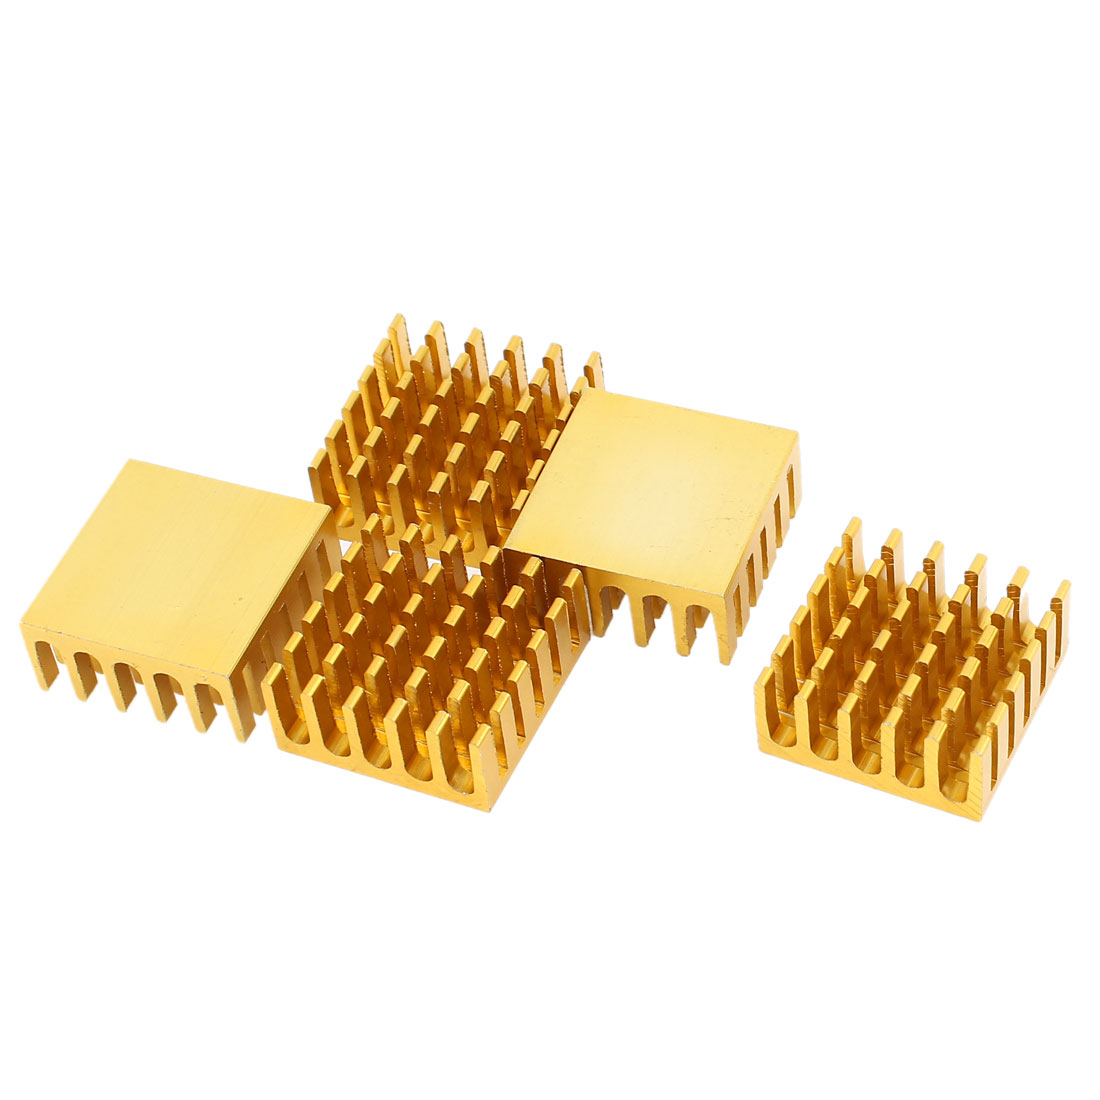 5 Pcs Gold Tone Aluminum Cooler Radiator Heat Sink Heatsink 22mm x 22mm x 10mm